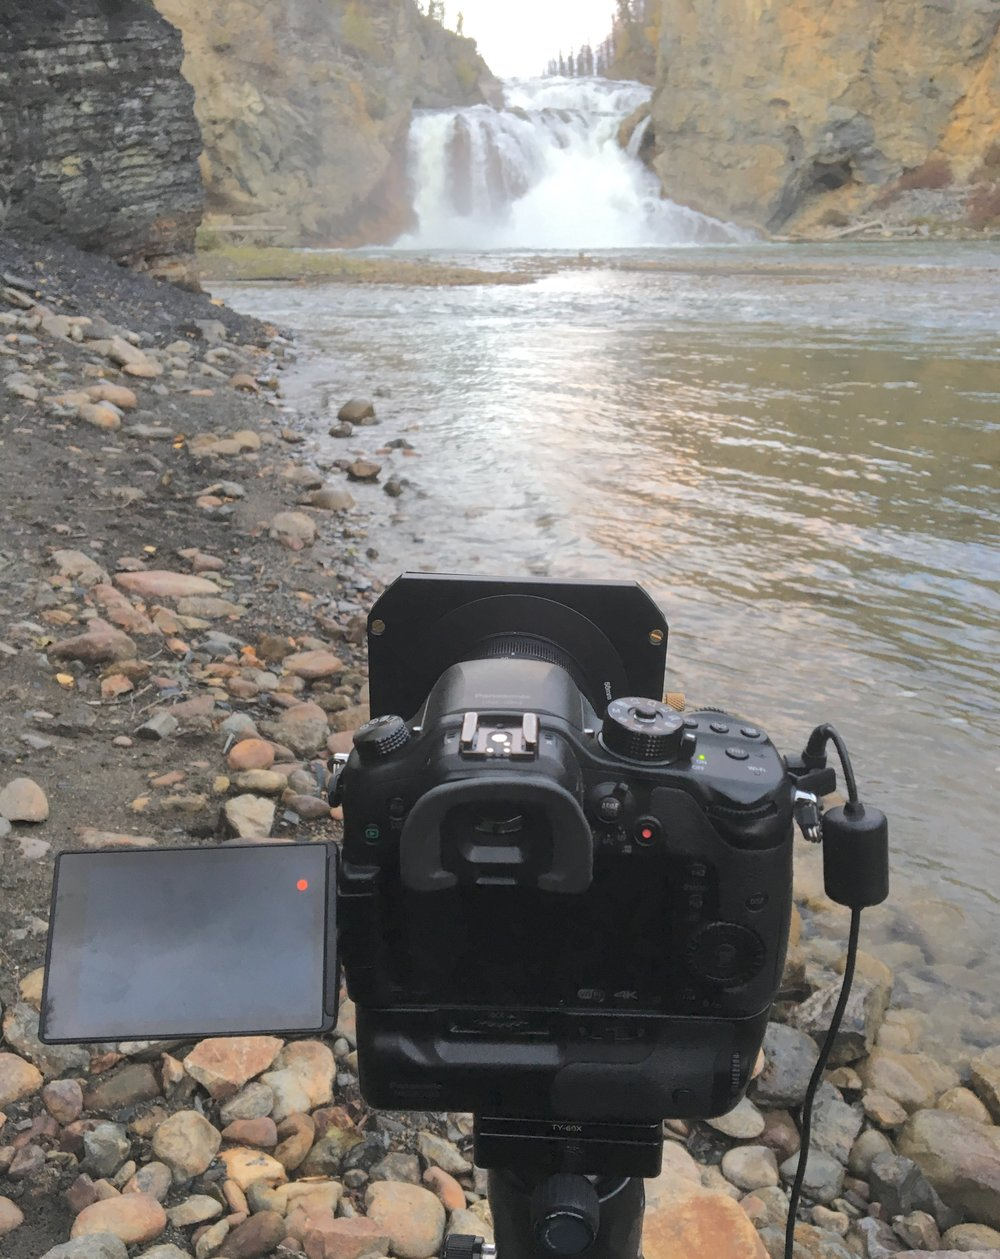 Step 4 - Now let's back up a bit and decide what type of waterfall or river photographs you want to achieve. This will depict what type of gear you will need to get the shot. Can you just walk up to a waterfall and shoot without a tripod? Yes, you can if you are shooting with a high shutter speed. But if you want that silky photo of water looking surreal to the eyes then you should start paying attention. Here is a list of gear you will need to help make better photographs.